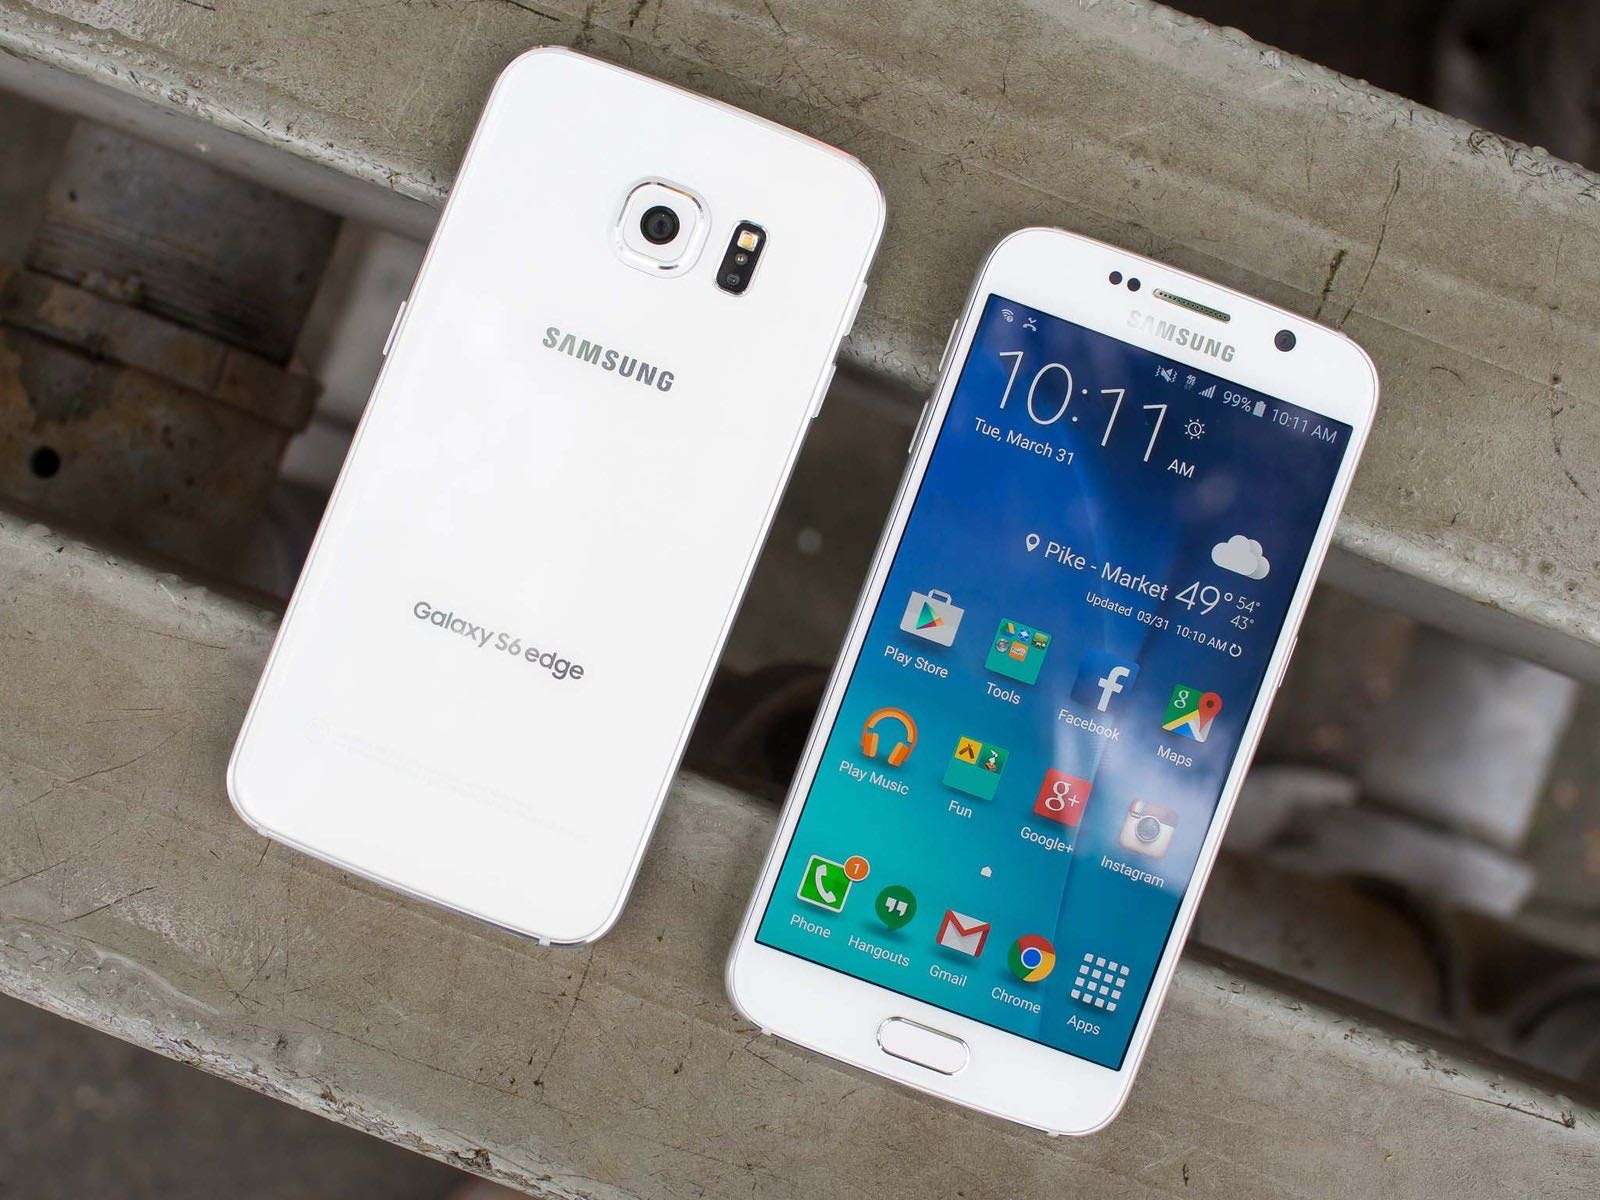 Samsung Galaxy S6 buy USA shop